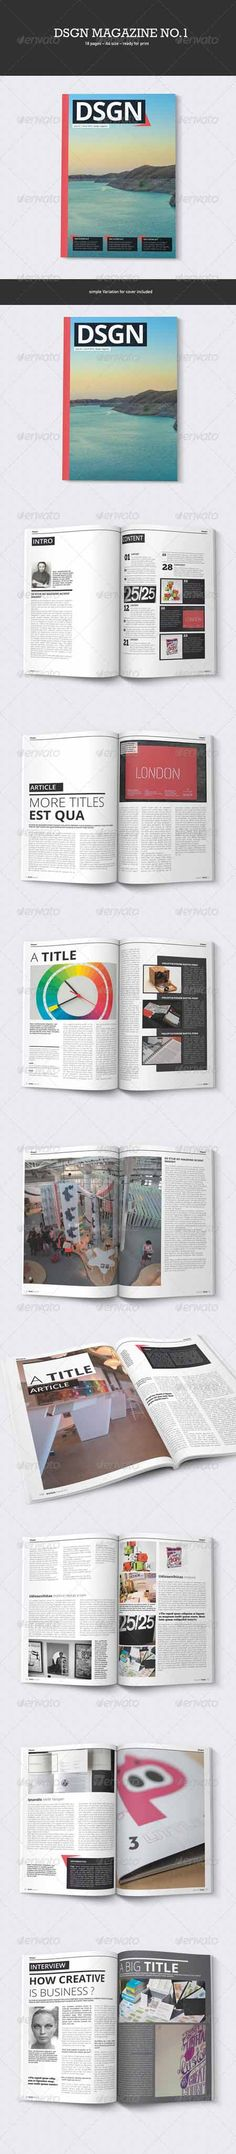 Graphicriver - DSGN Design Magazine No.1